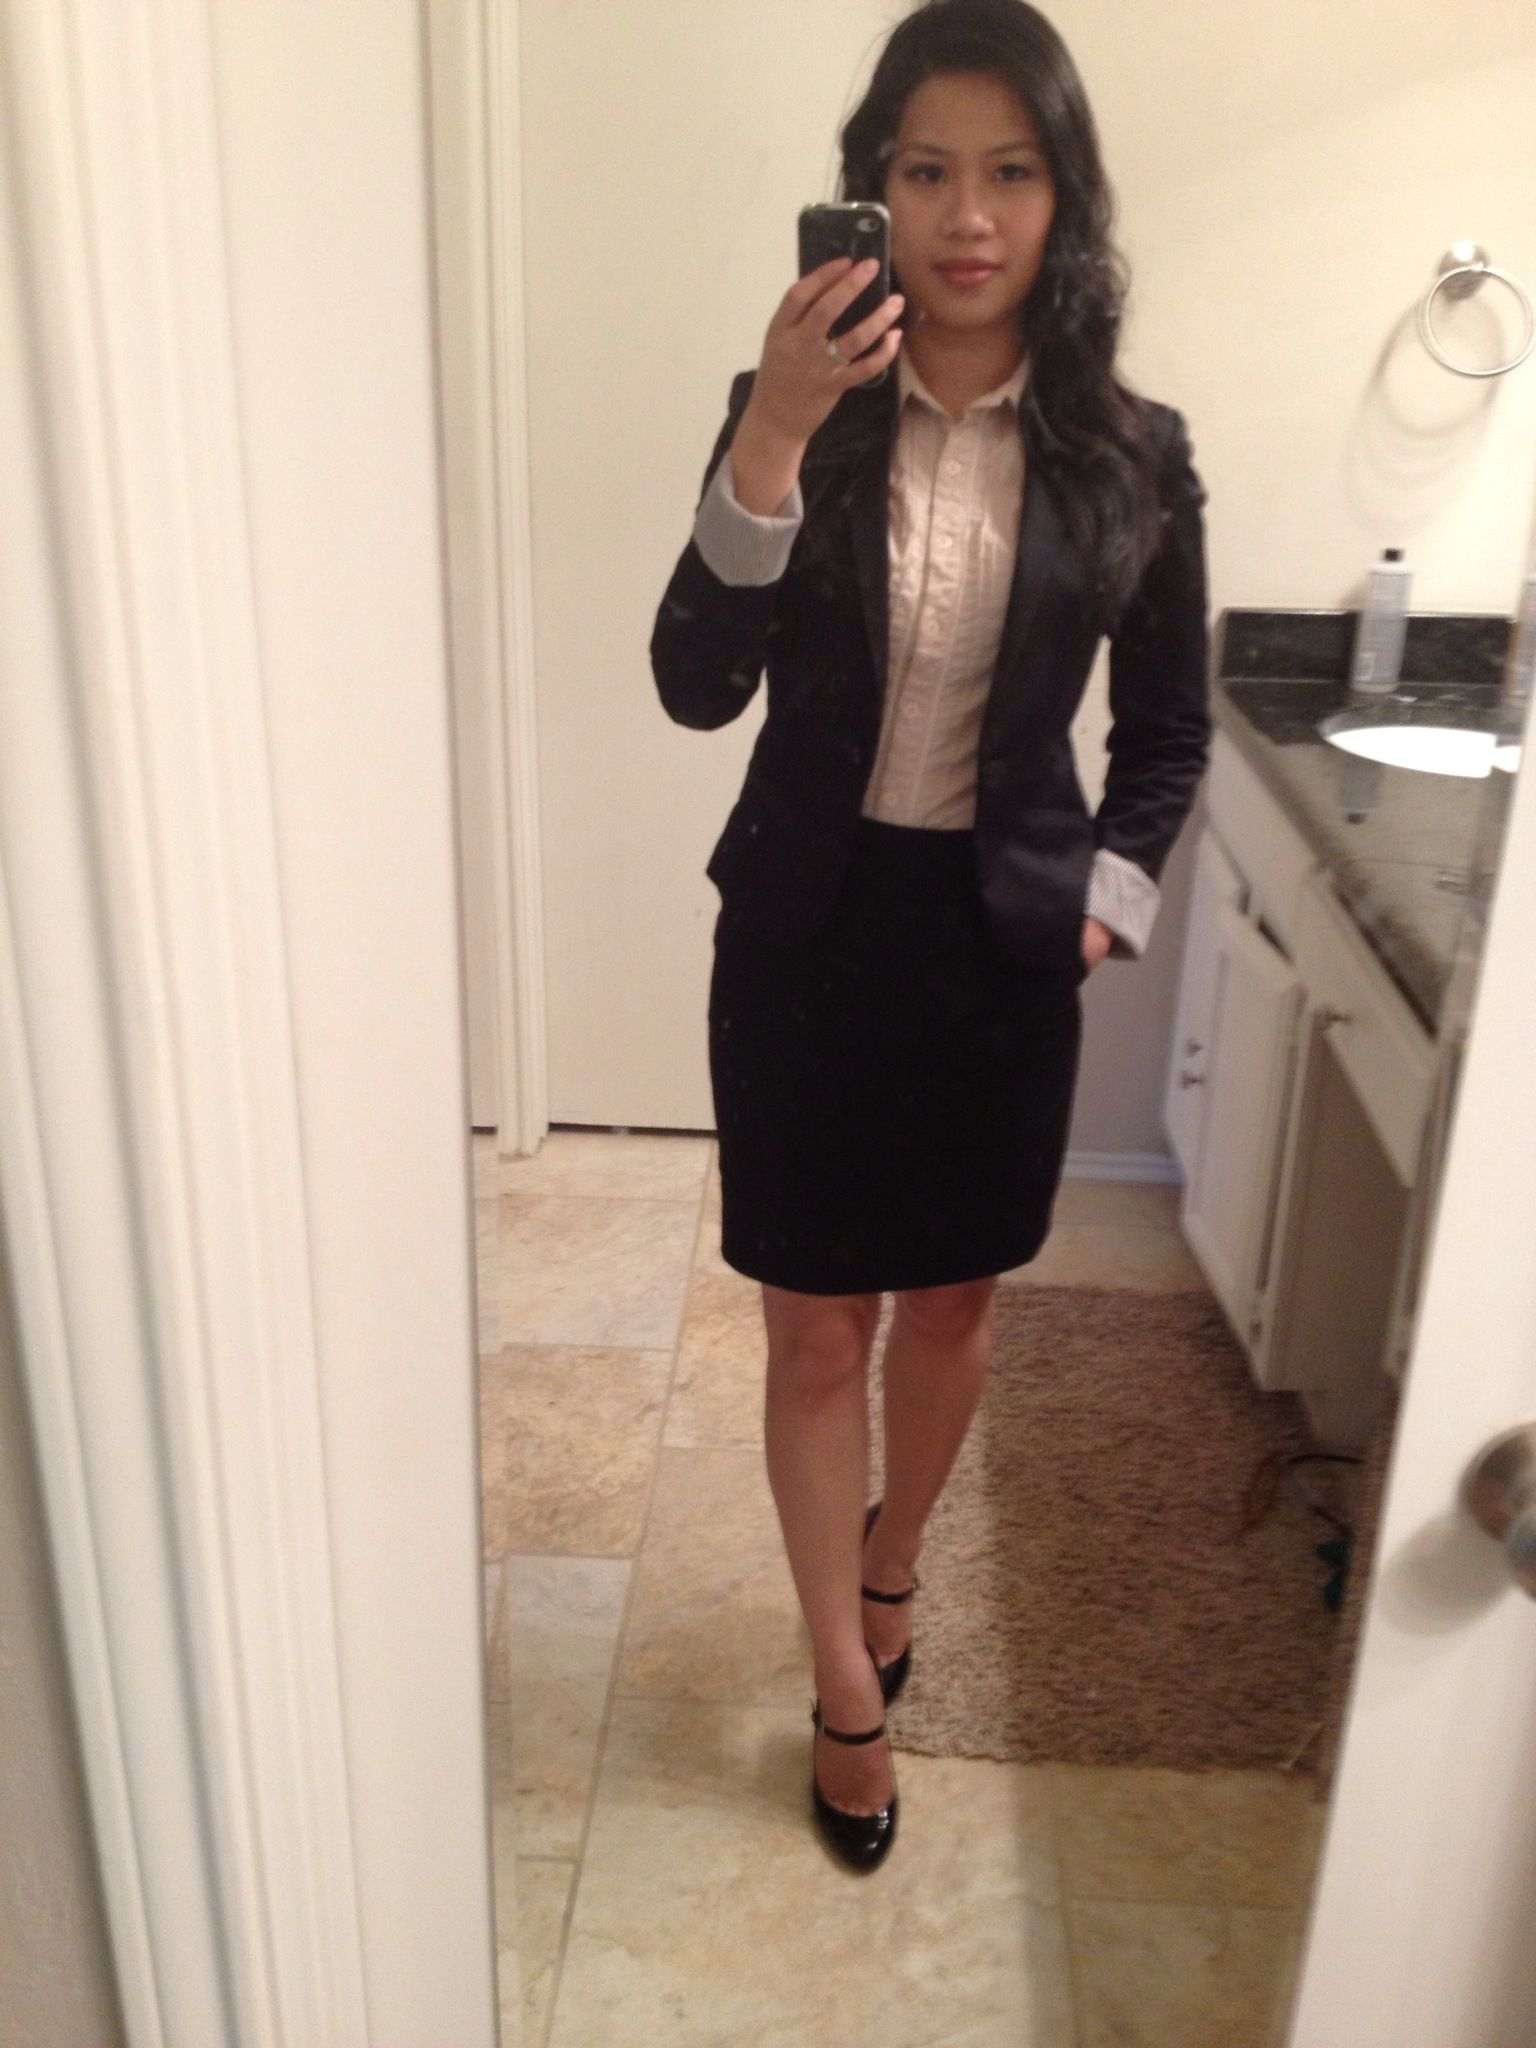 Interview Outfit That Helped Me Got The Job   Fashion -2144